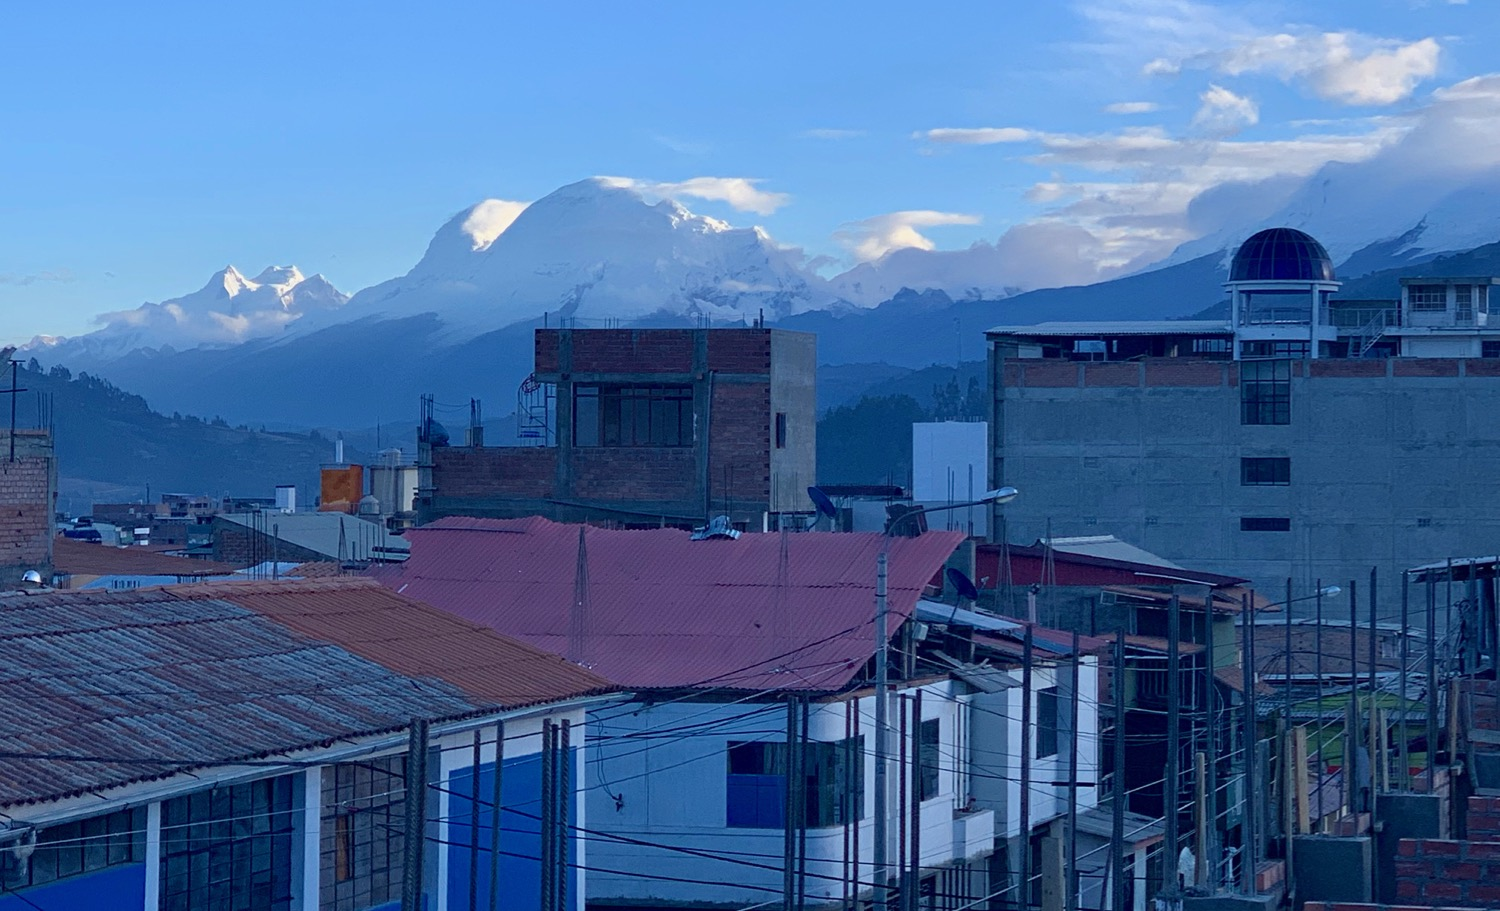 I see Huascarán every morning over coffee (center above brick tower). It looks much the same today as it did before a giant slab fell off and buried the town of Yungay.